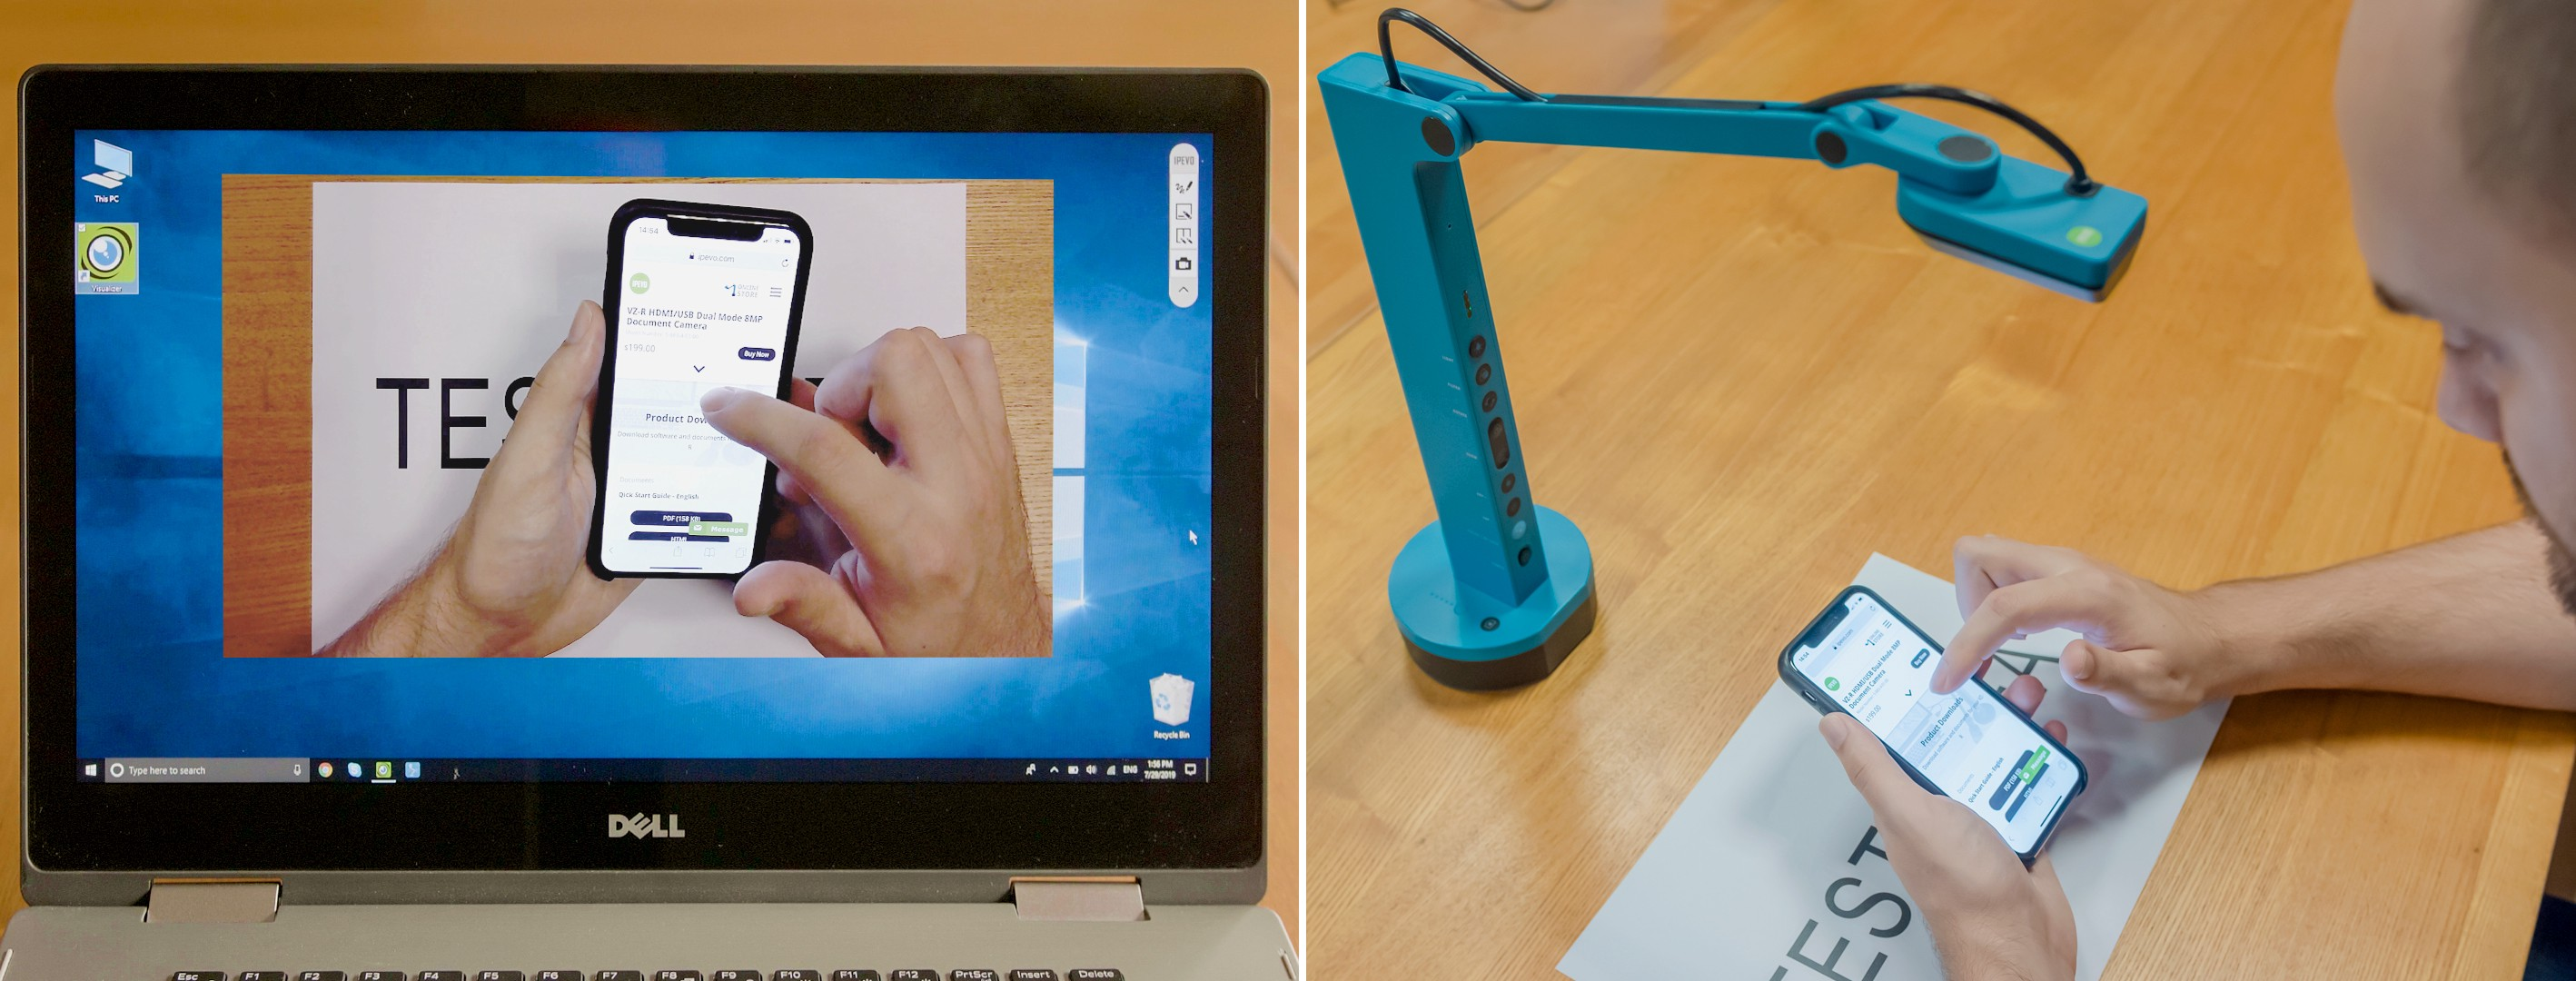 Using VZ-X to capture the hand gestures of the participant.